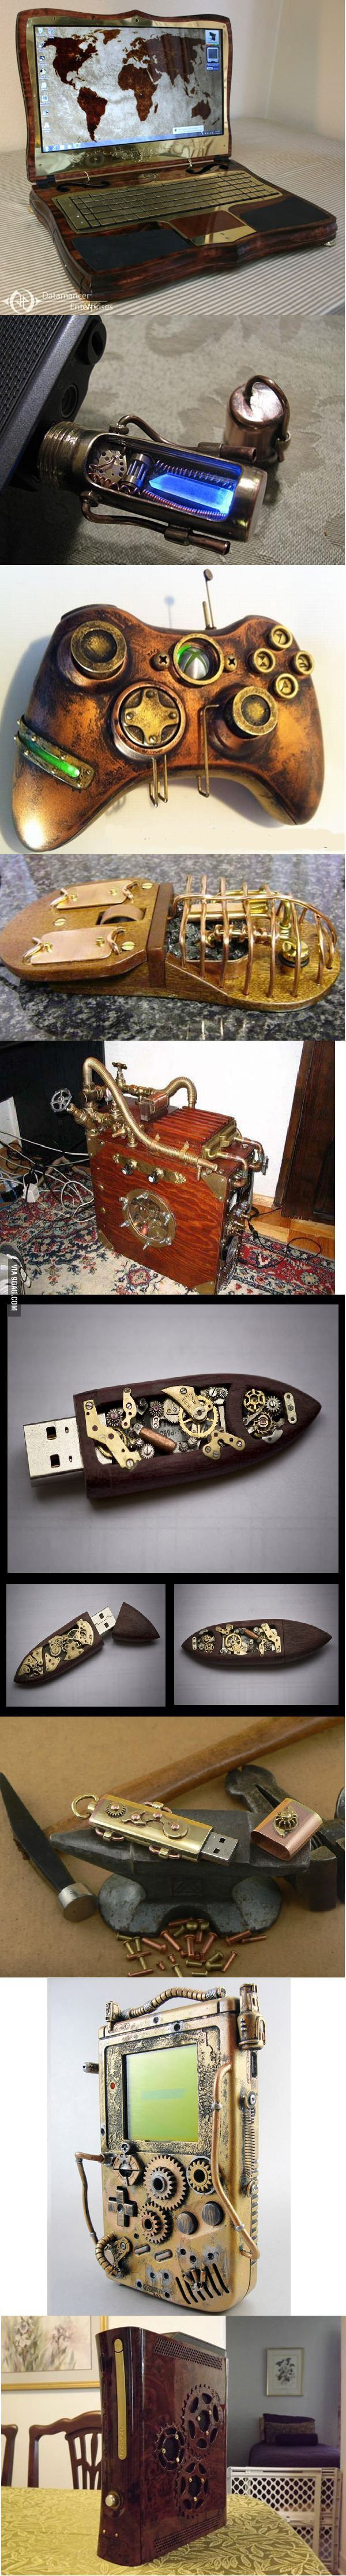 Steampunk gadgets - you know you want one